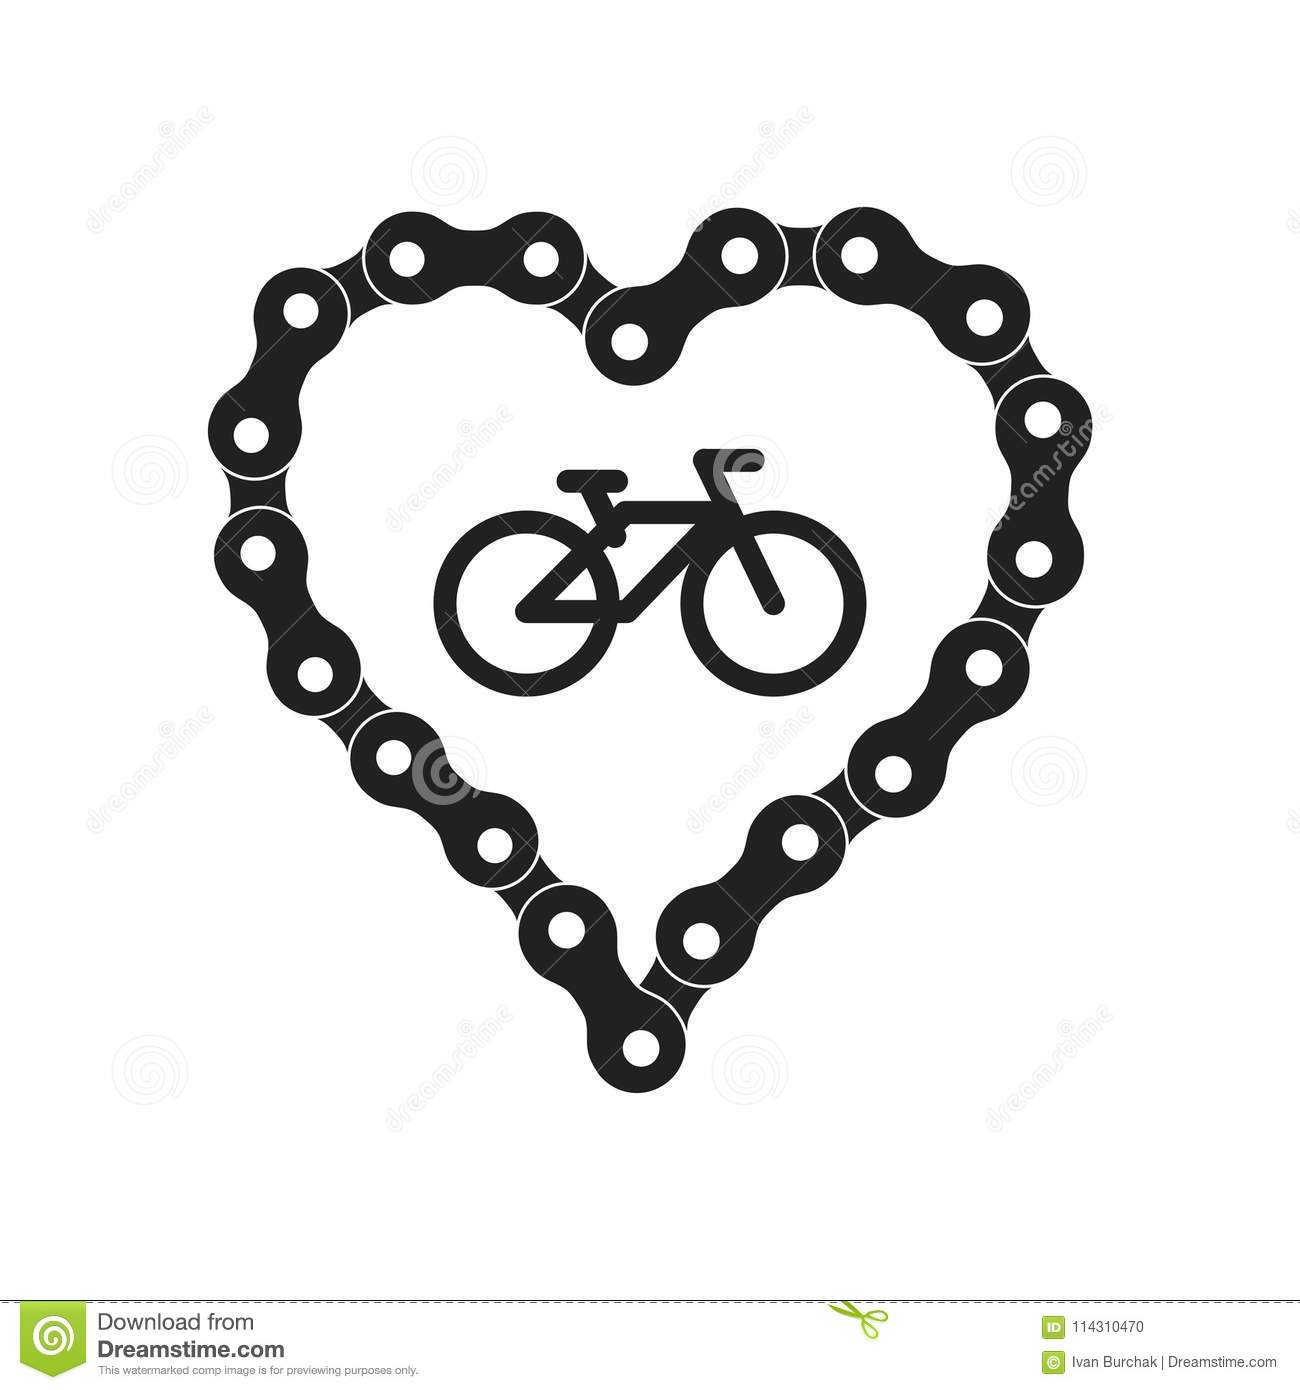 Vector Heart Made of Bike or Bicycle Chain. Black Heart Silhouette Background plus Bicycle Sample Icon